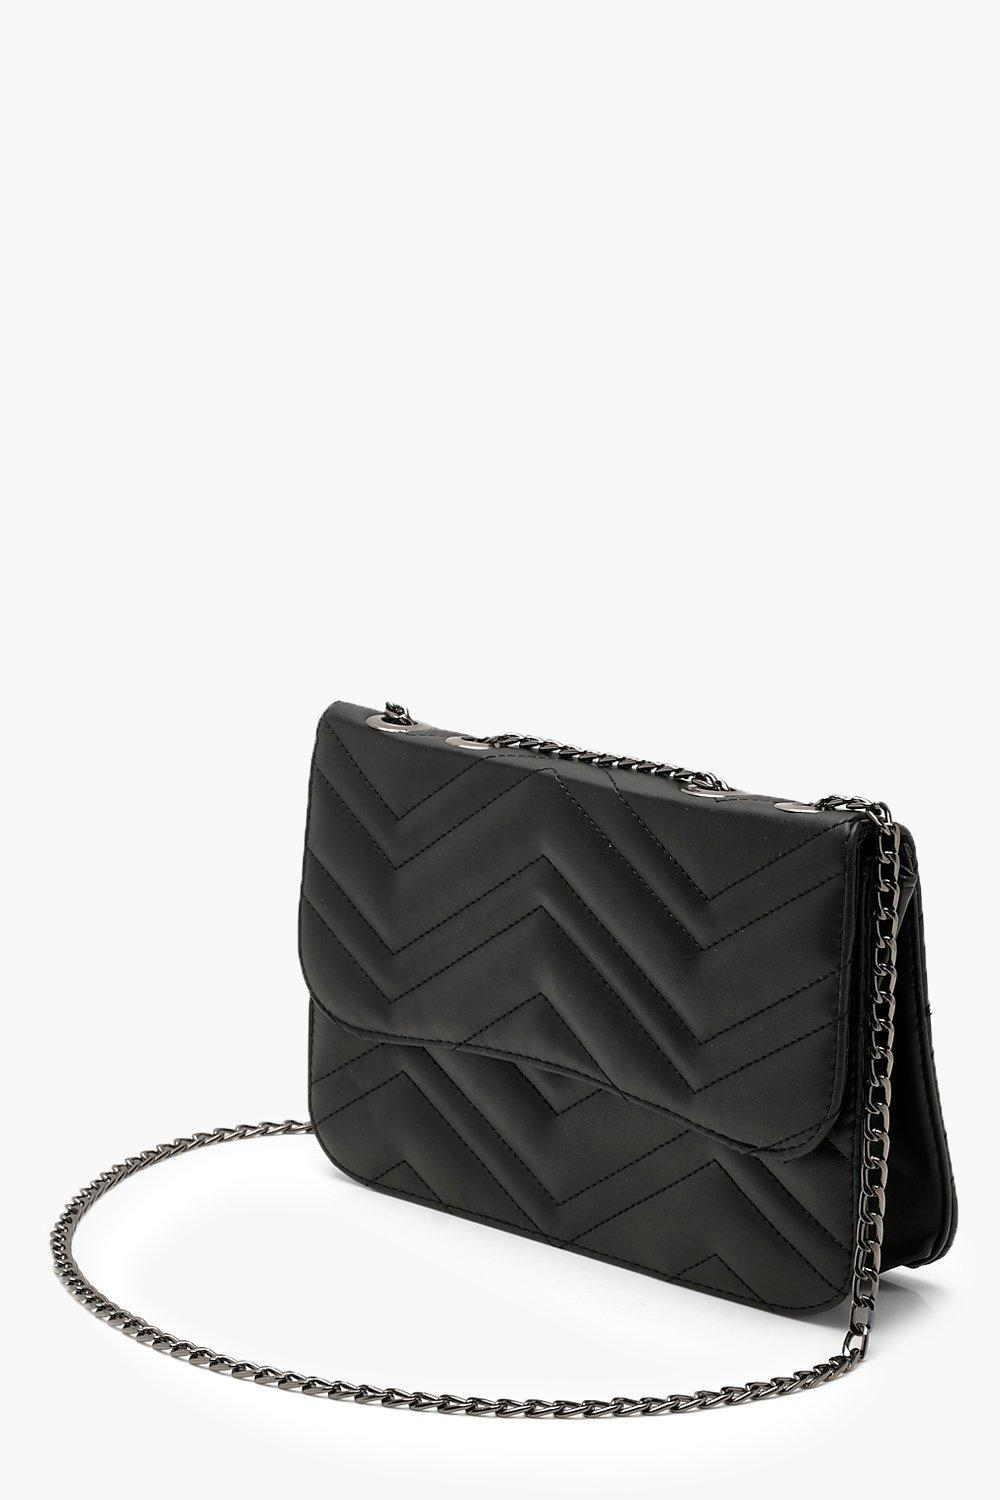 351122f1323c Lyst - Boohoo Zig Zag Quilted Pu Chain Strap Cross Body in Black